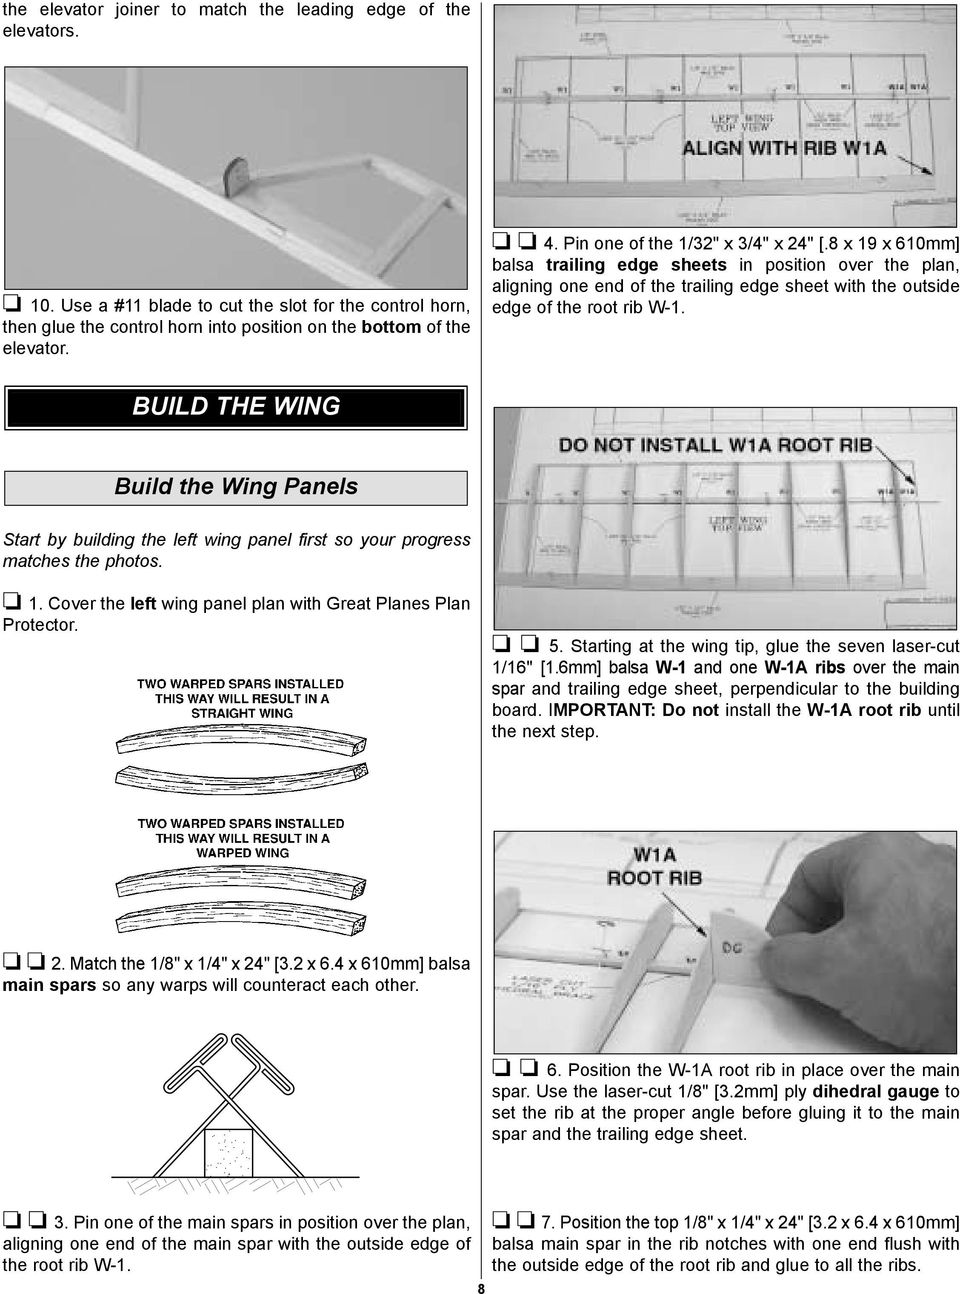 BUILD THE WING Build the Wing Panels Start by building the left wing panel first so your progress matches the photos. 1. Cover the left wing panel plan with Great Planes Plan Protector. 5.